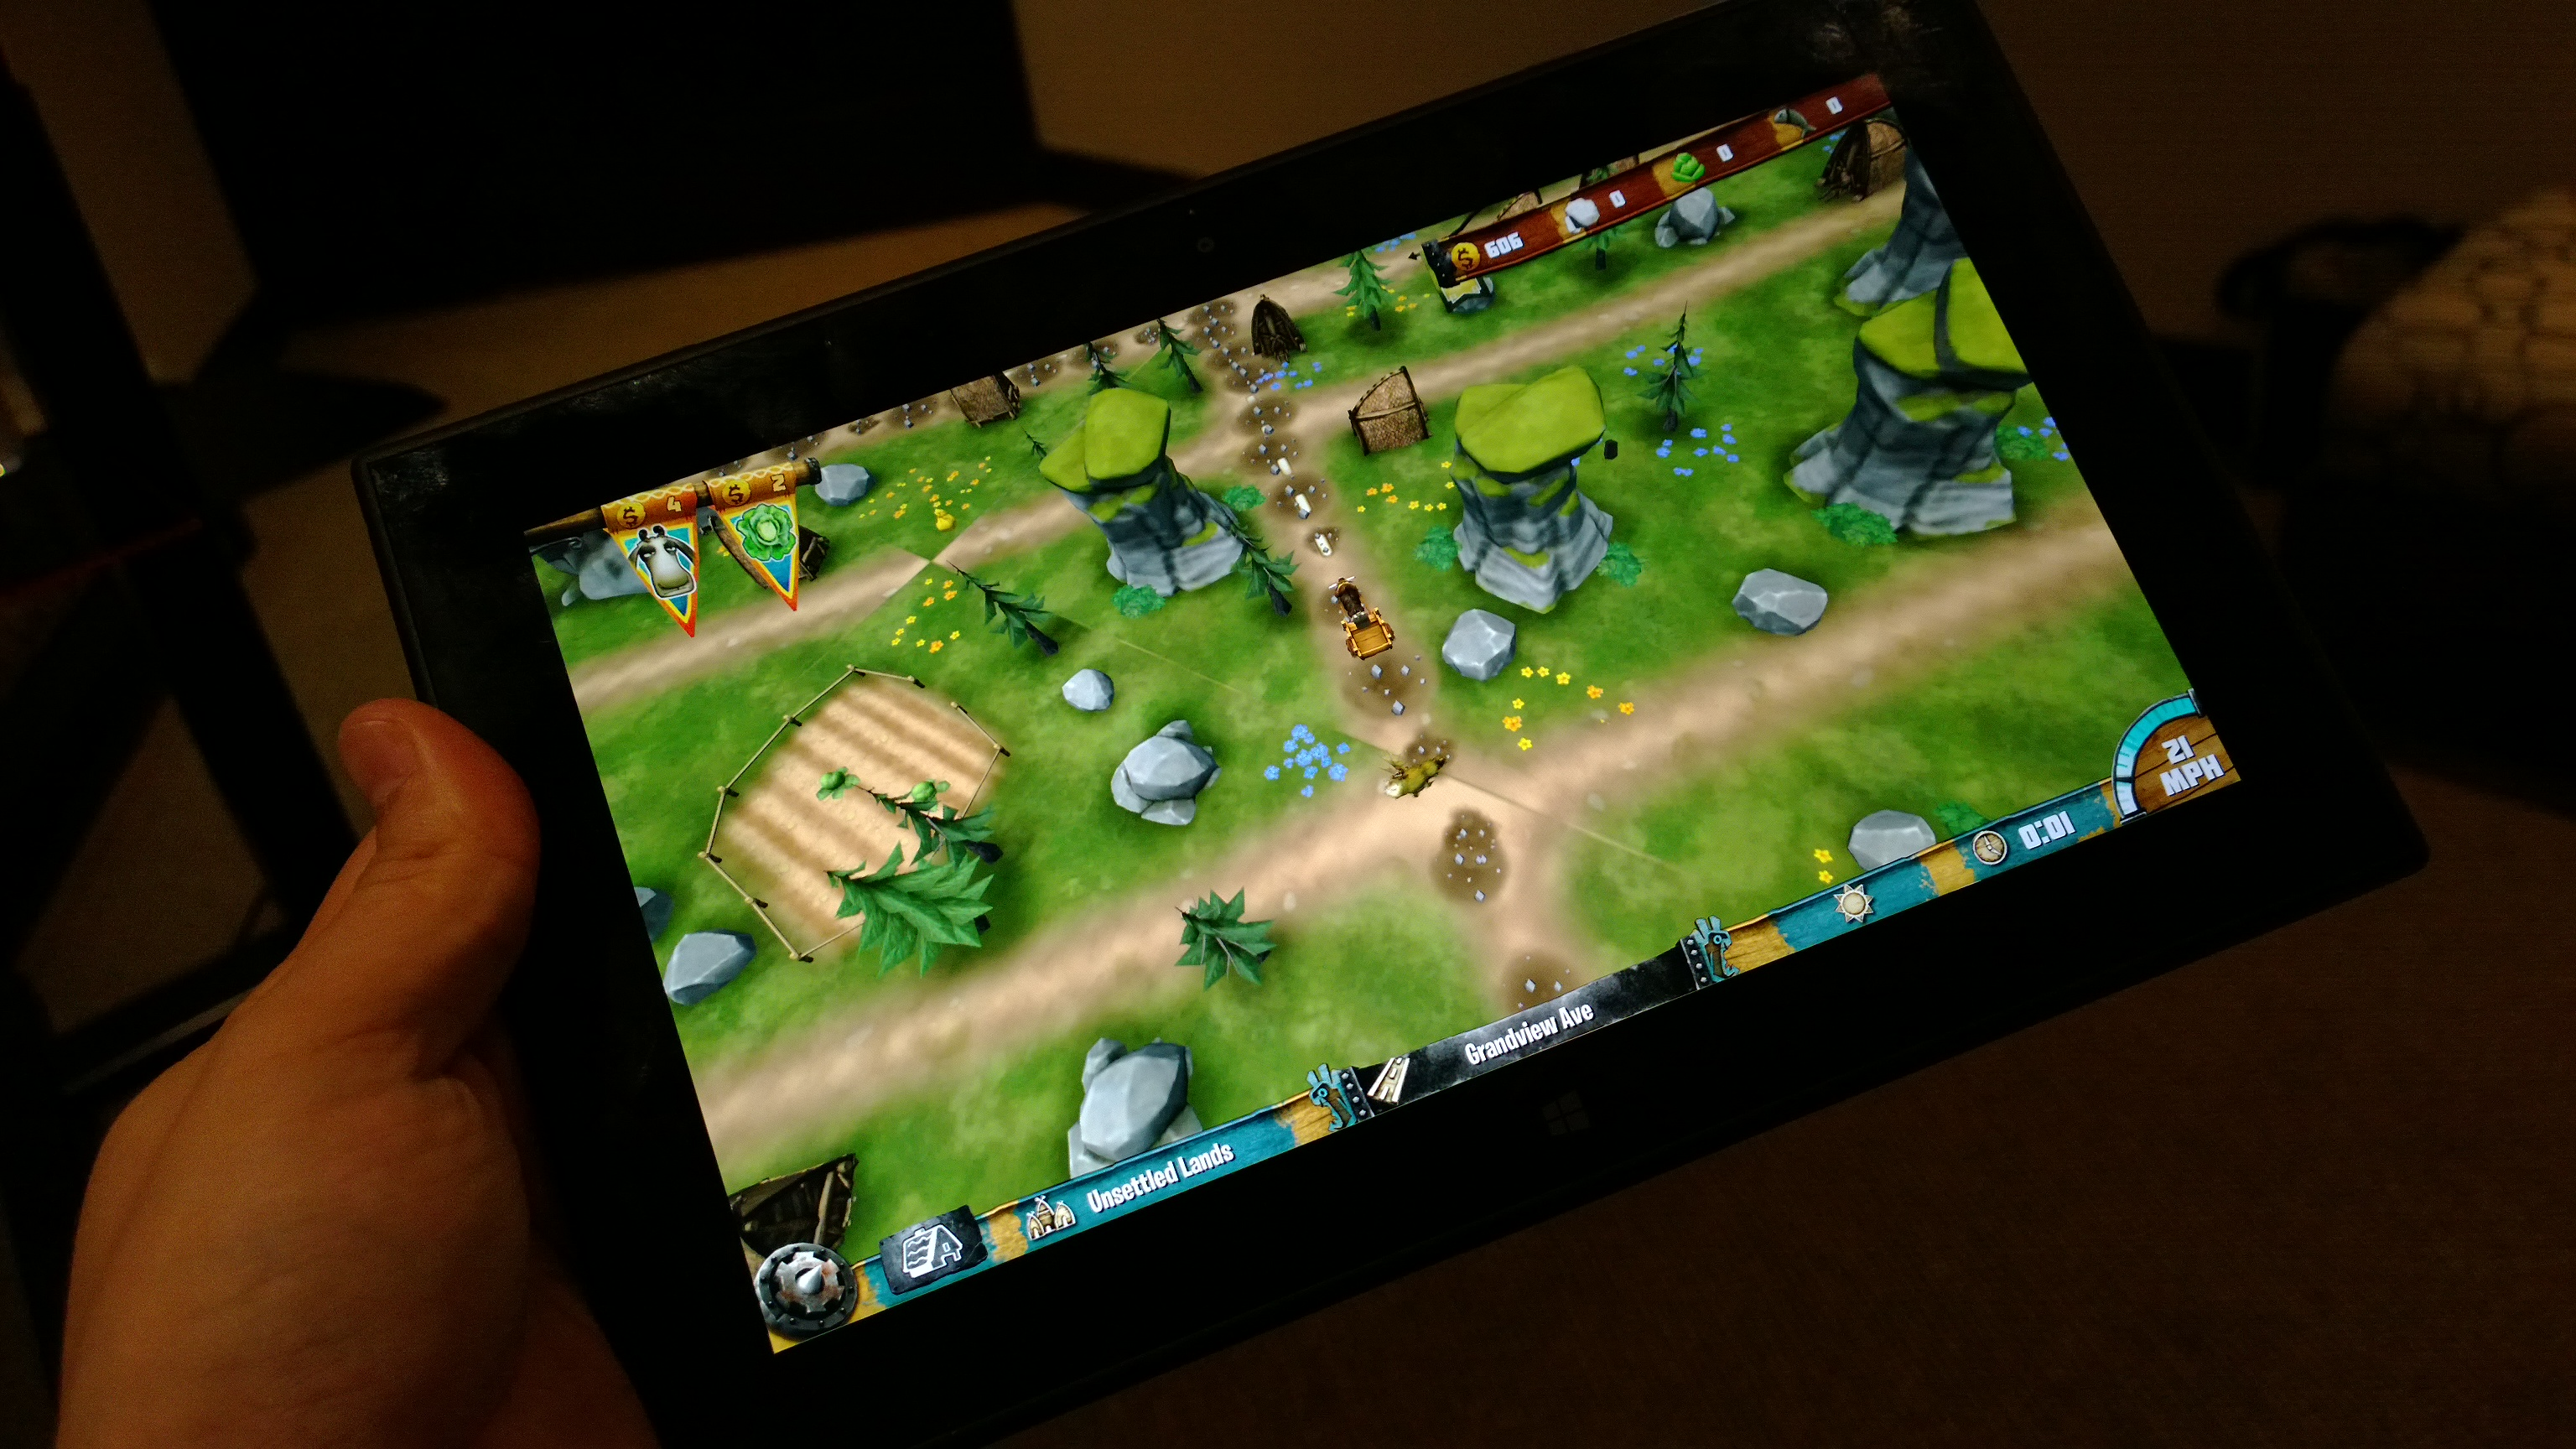 Hands on dreamworks dragons adventure for the nokia lumia 2520 wp20131120121142pro dragons adventure exists in the world of the popular film how to train your ccuart